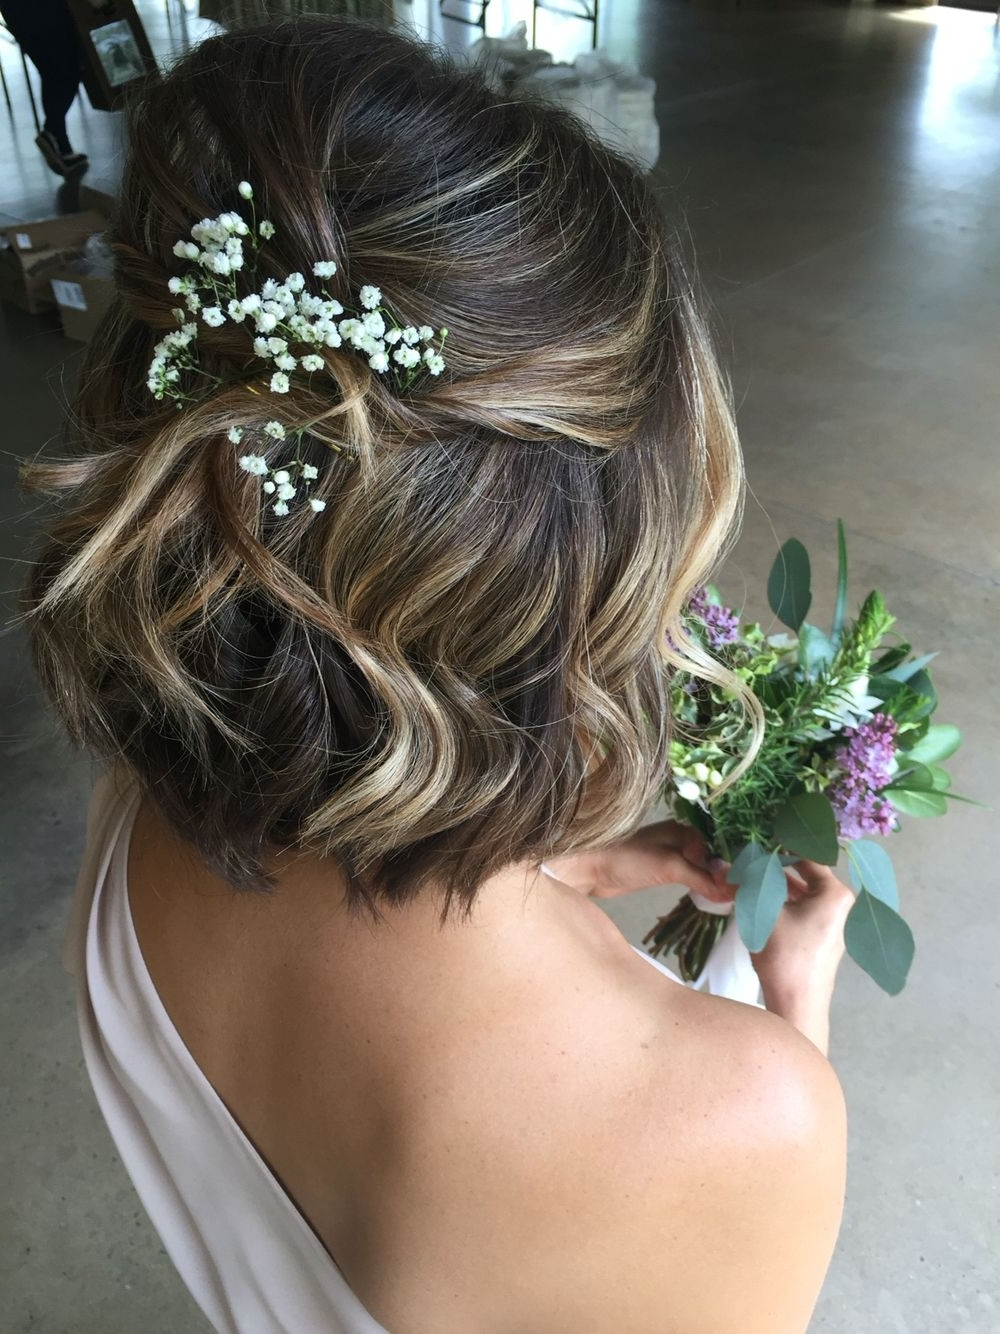 15 Best Ideas Of Wedding Hairstyles For Short Hair Bridesmaid